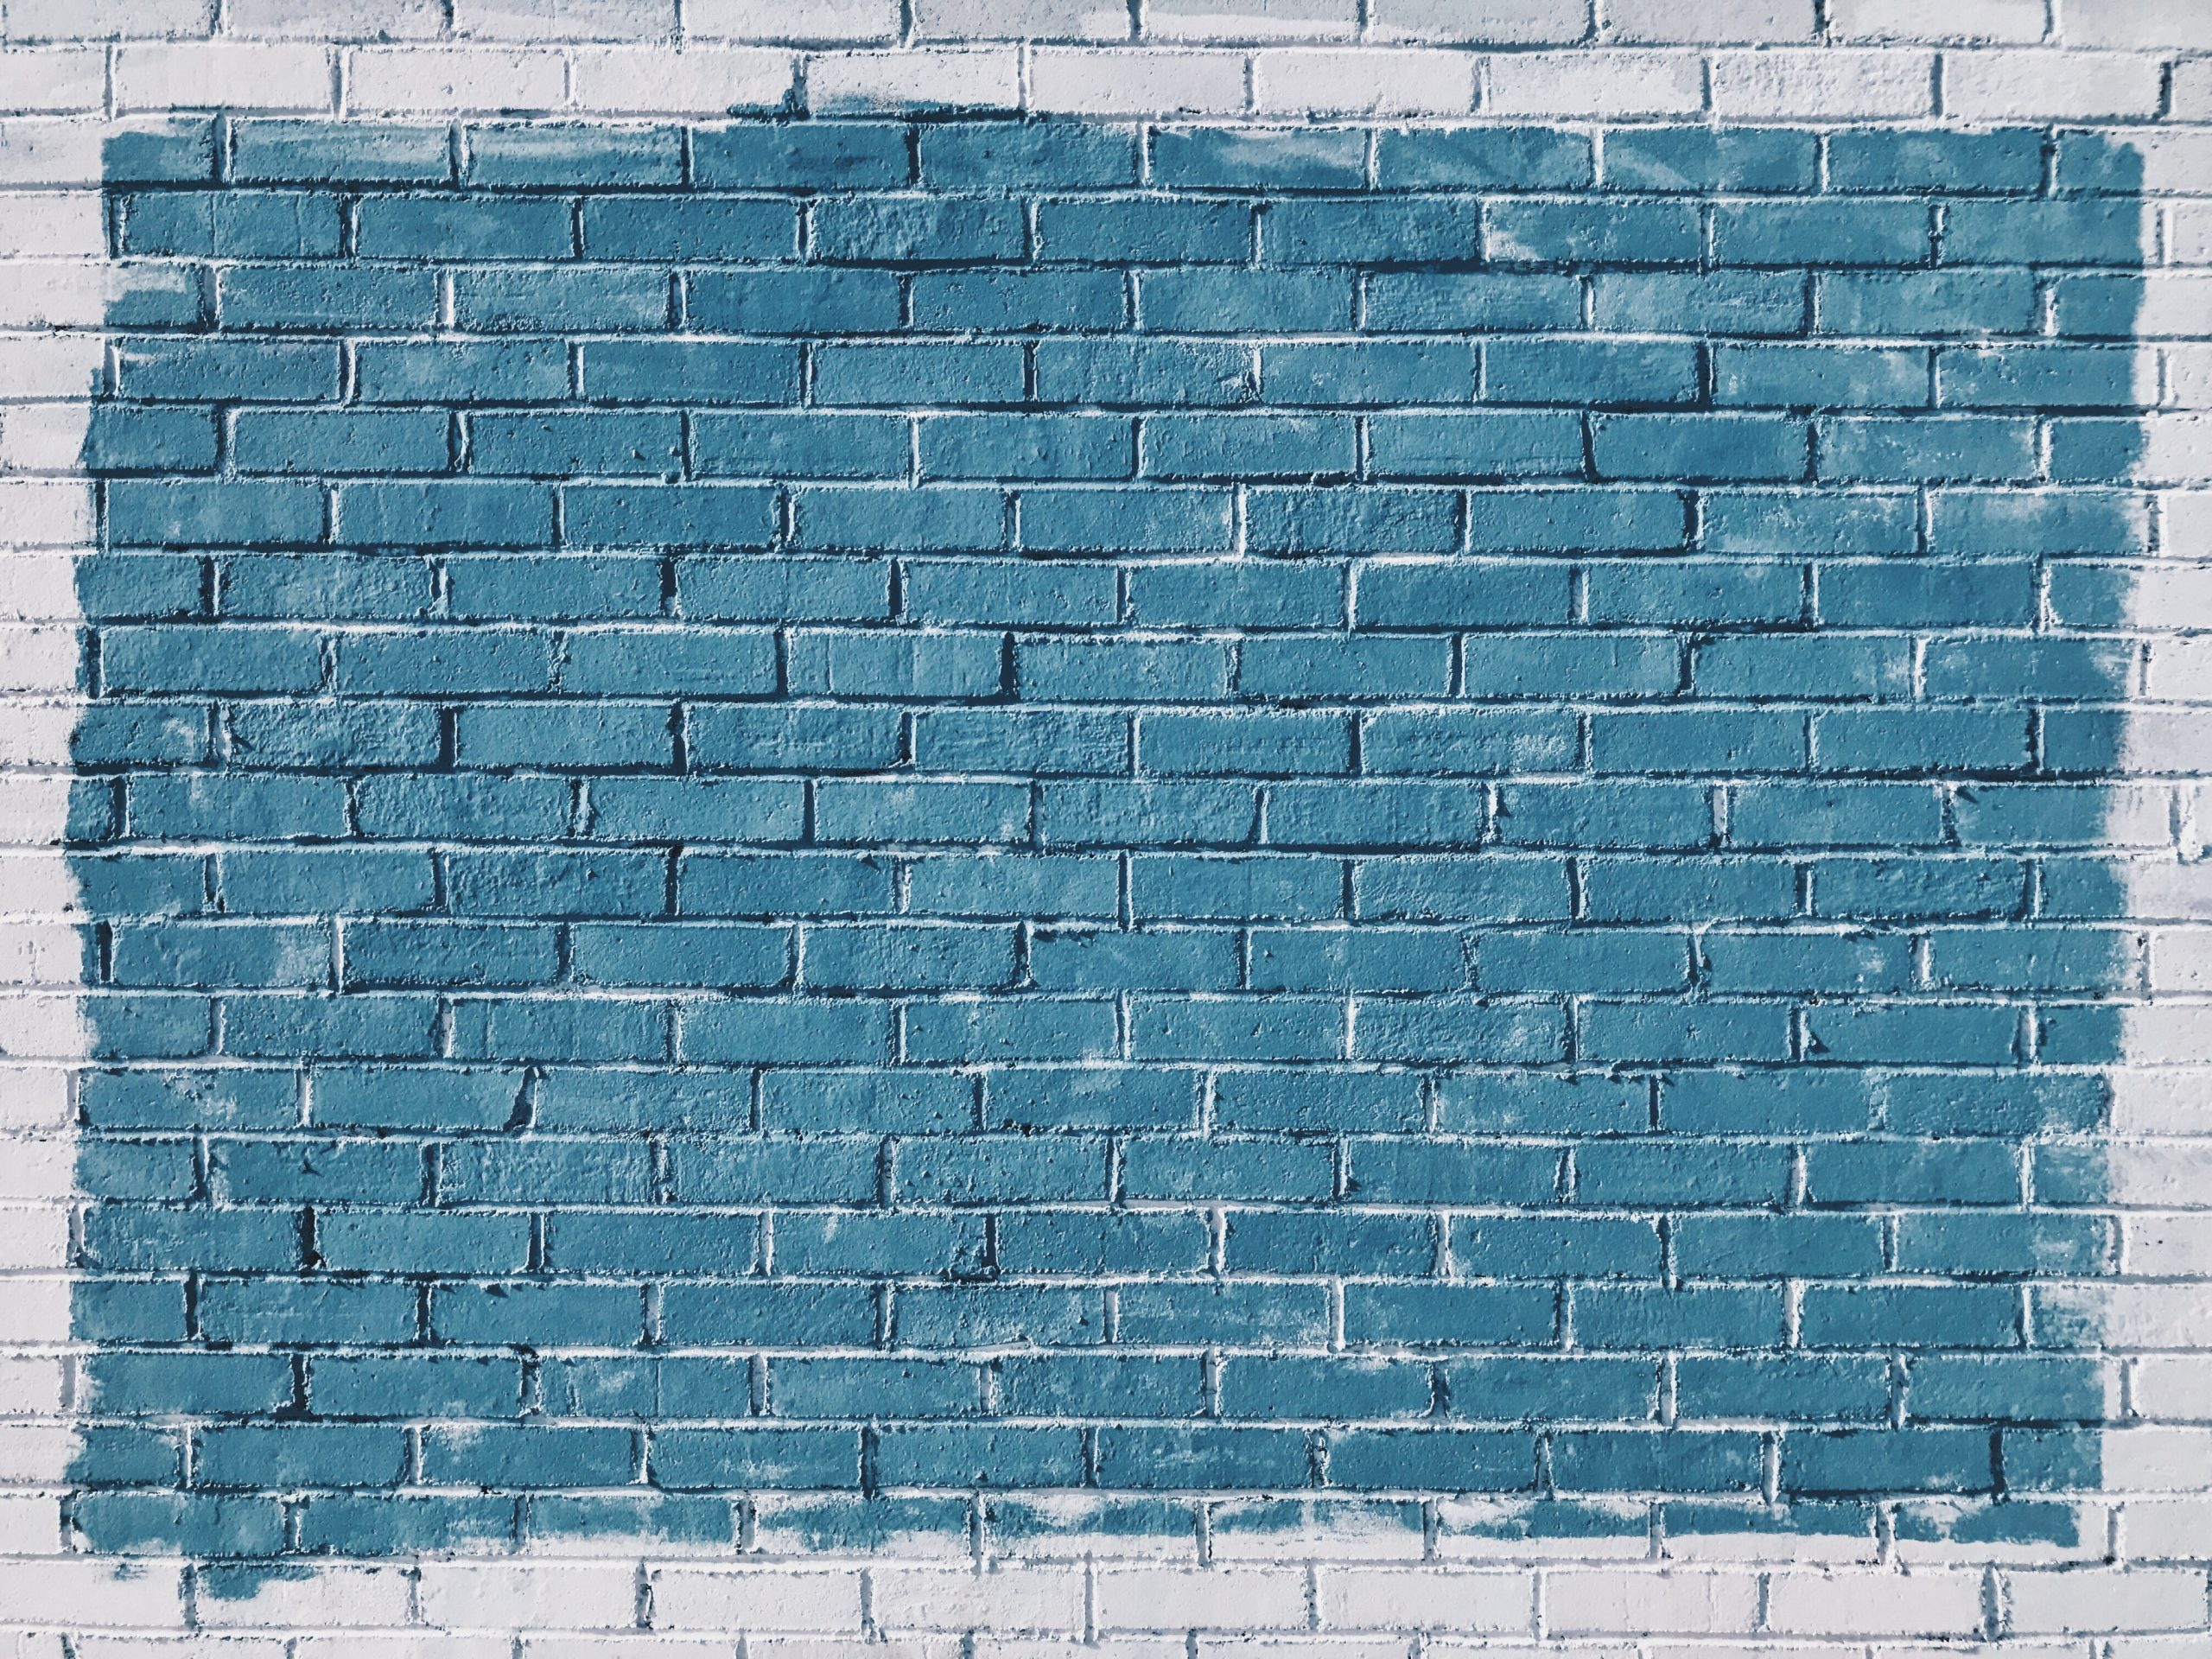 wallpaper Gray concrete bricks painted in blue